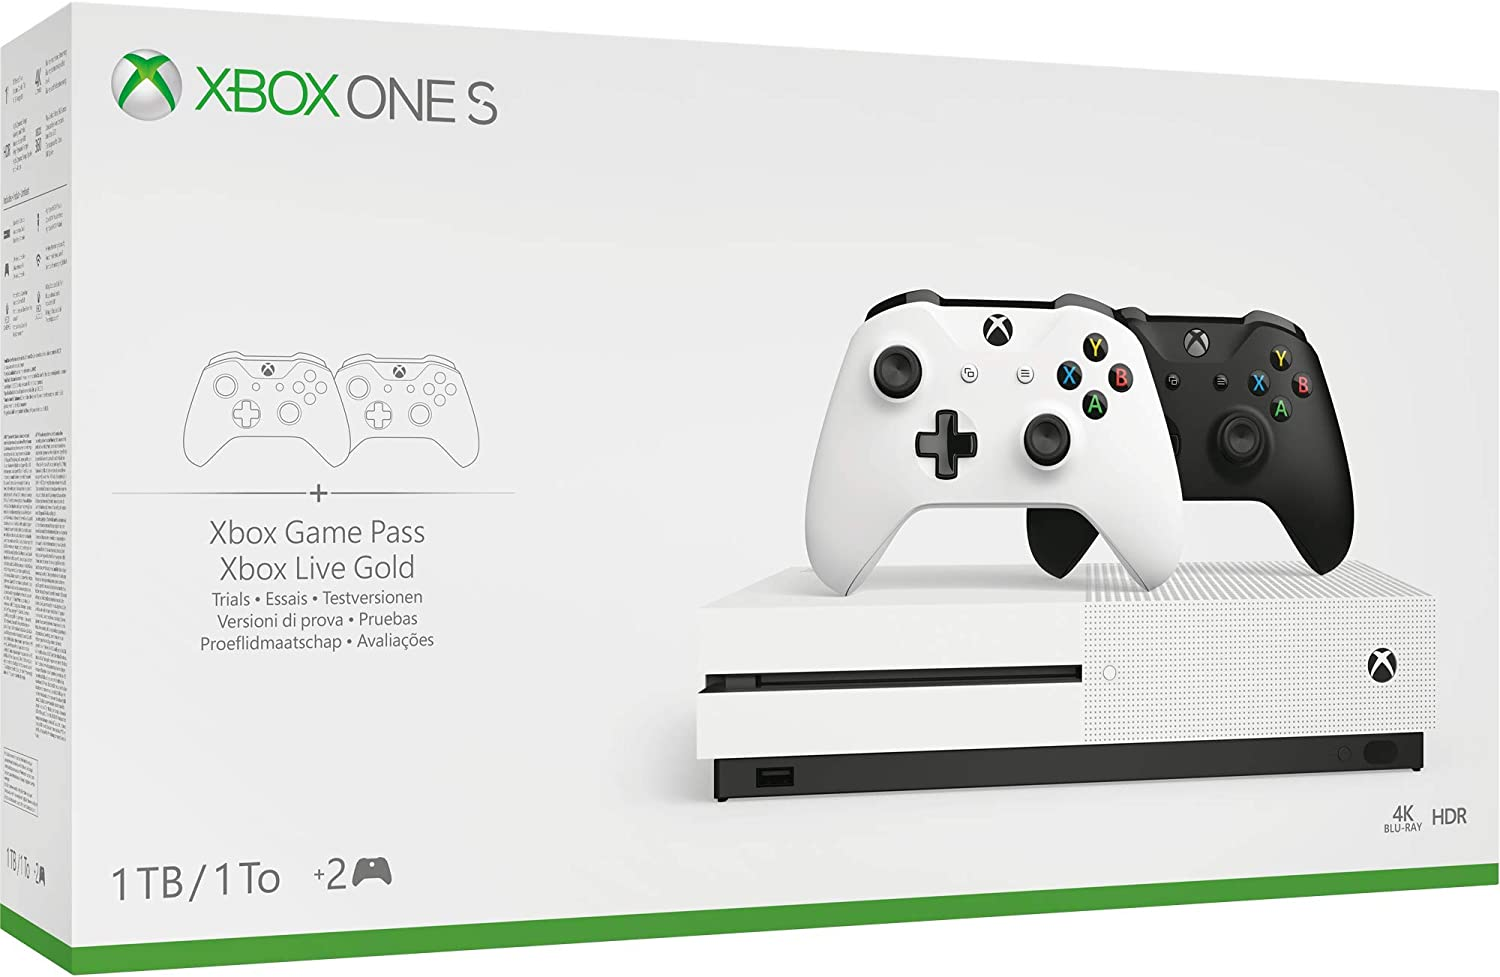 Pack Xbox One S con 2 mandos (Edición Exclusiva Amazon): Amazon.es ...